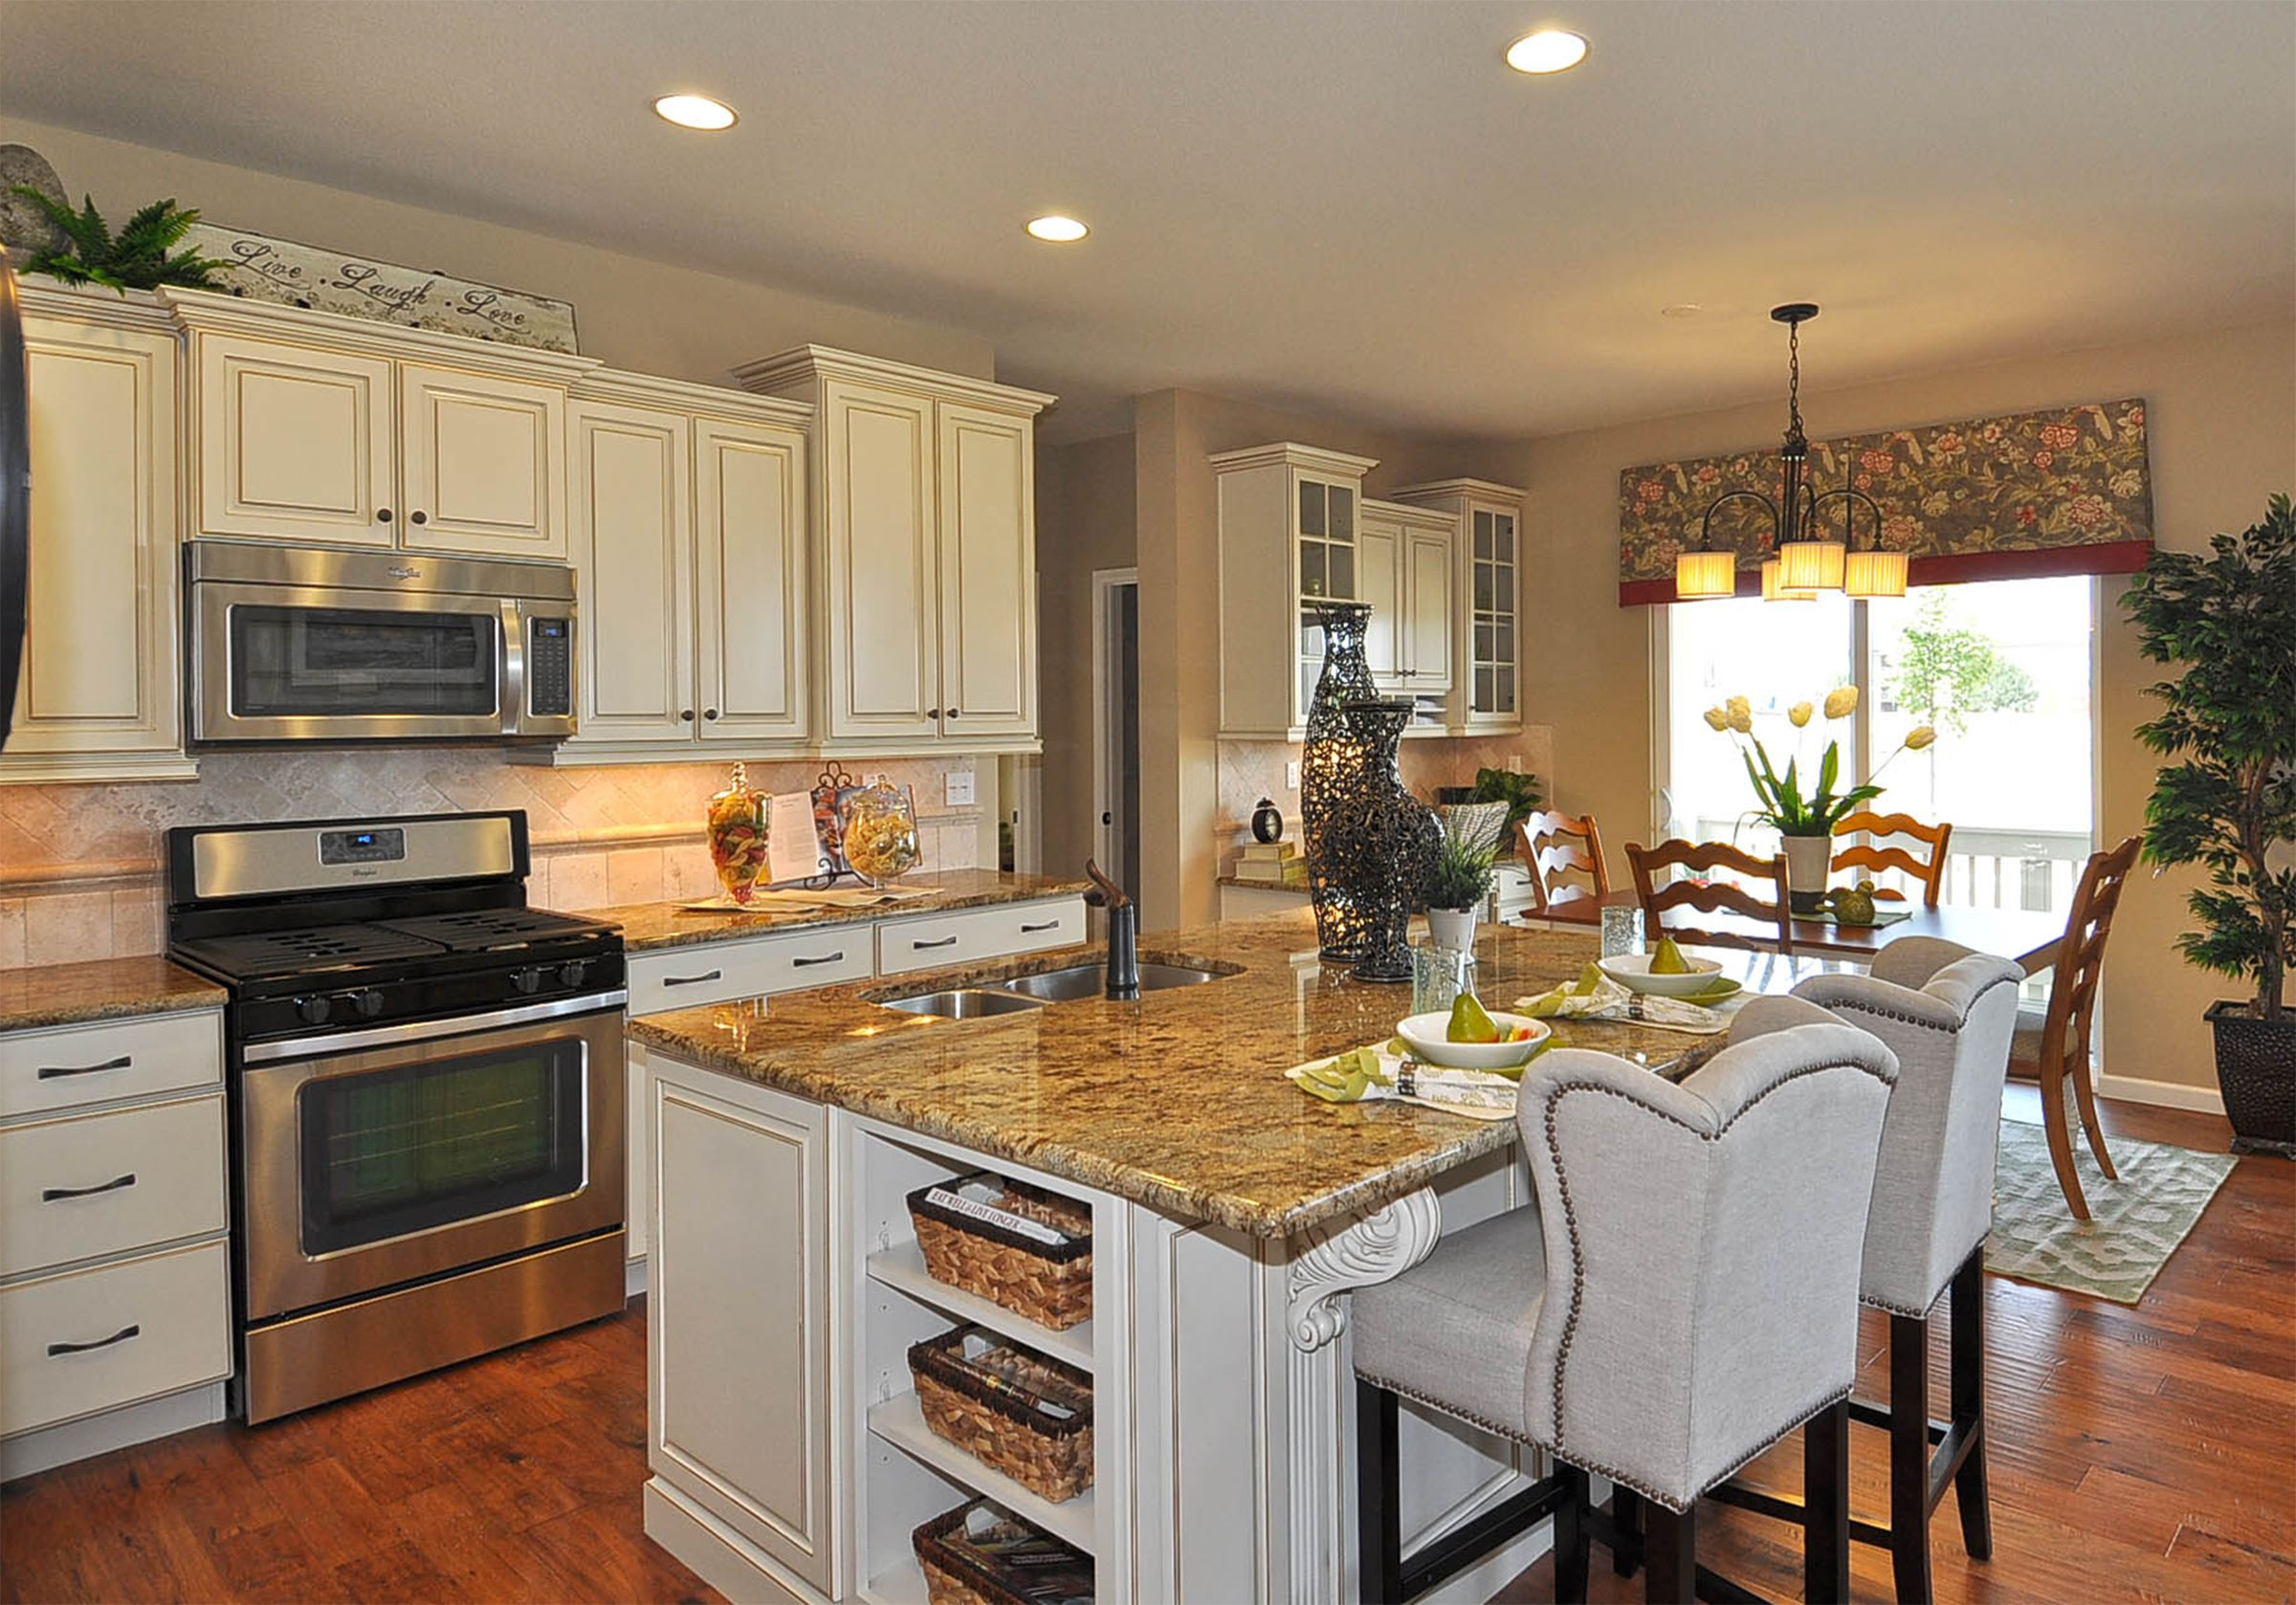 The Traditional Design Of The Kitchen In The Washington Model At Observatory Village In Fort: kitchen design for village